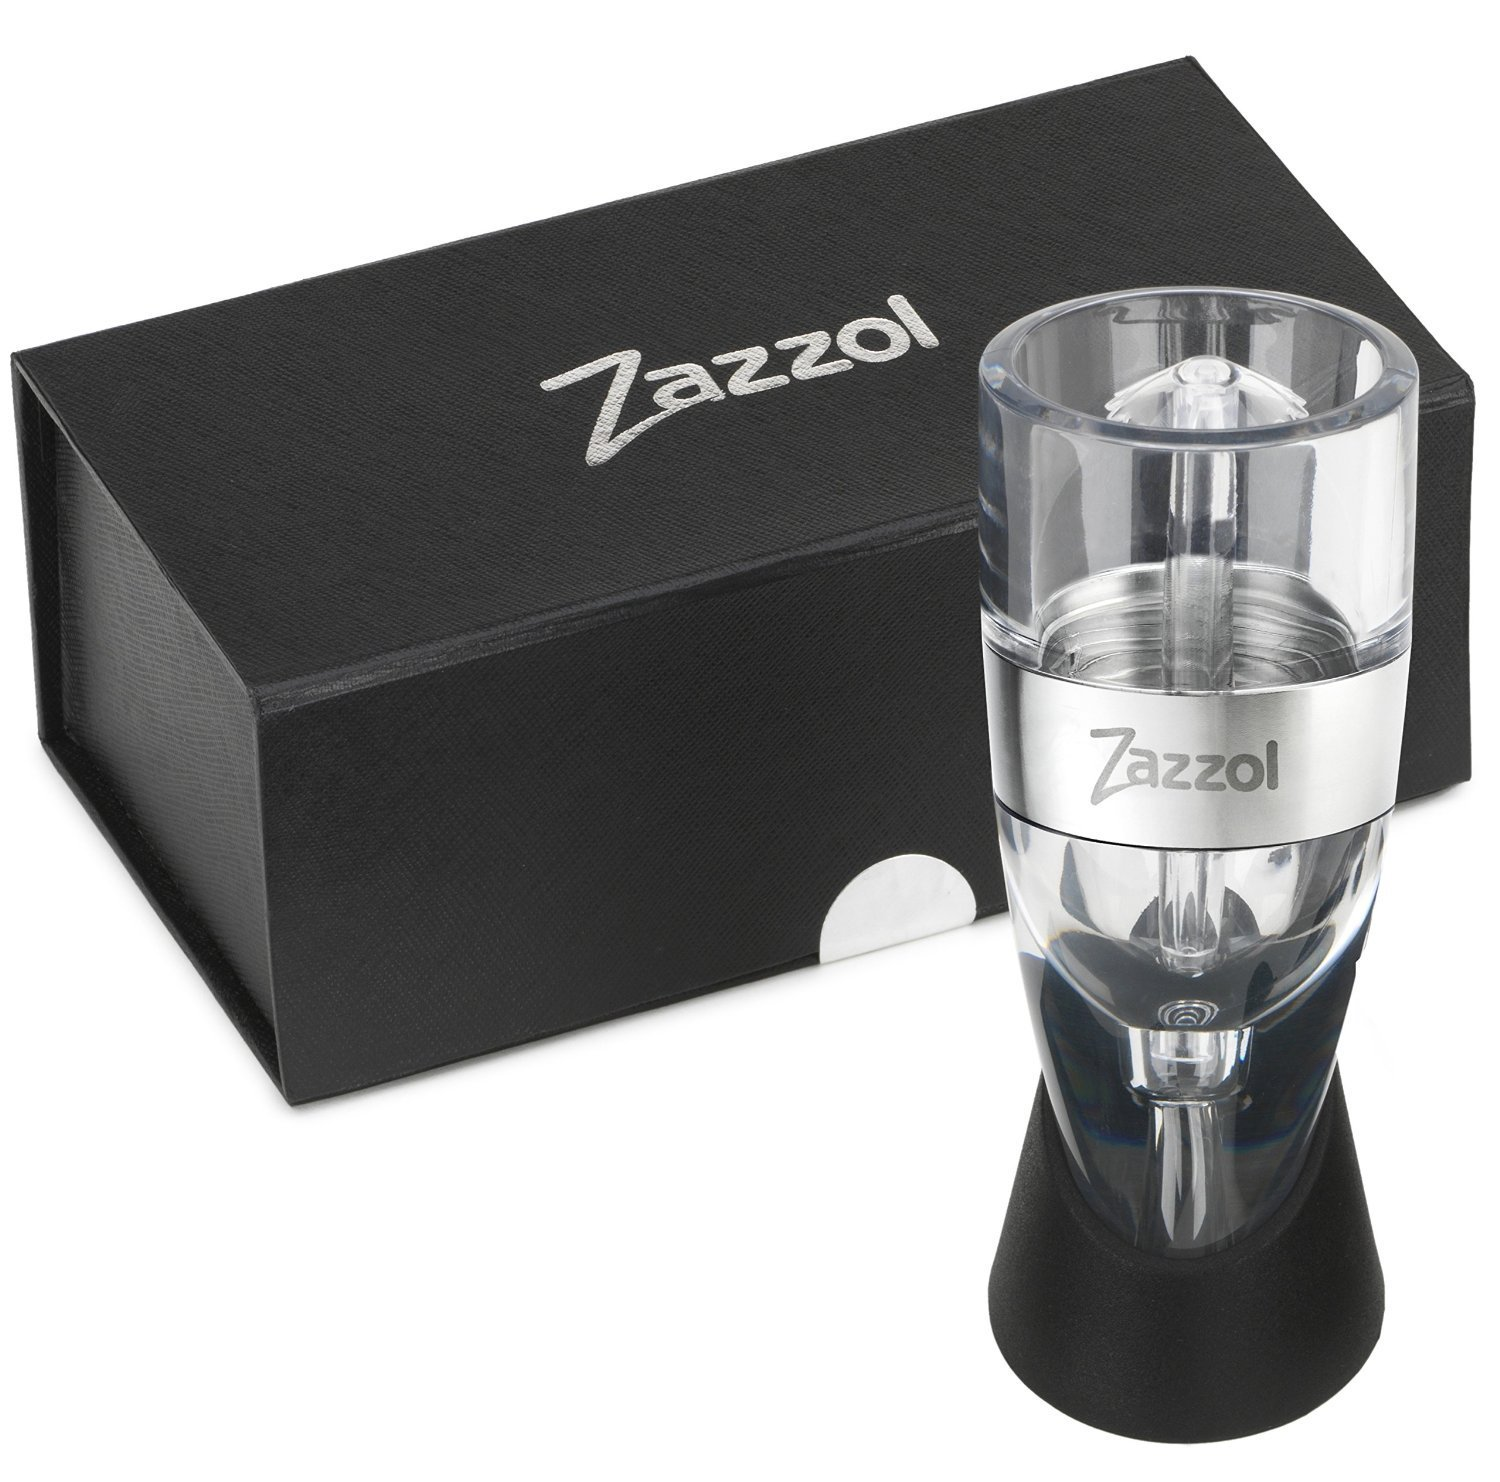 Zazzol Wine Aerator and Decanter